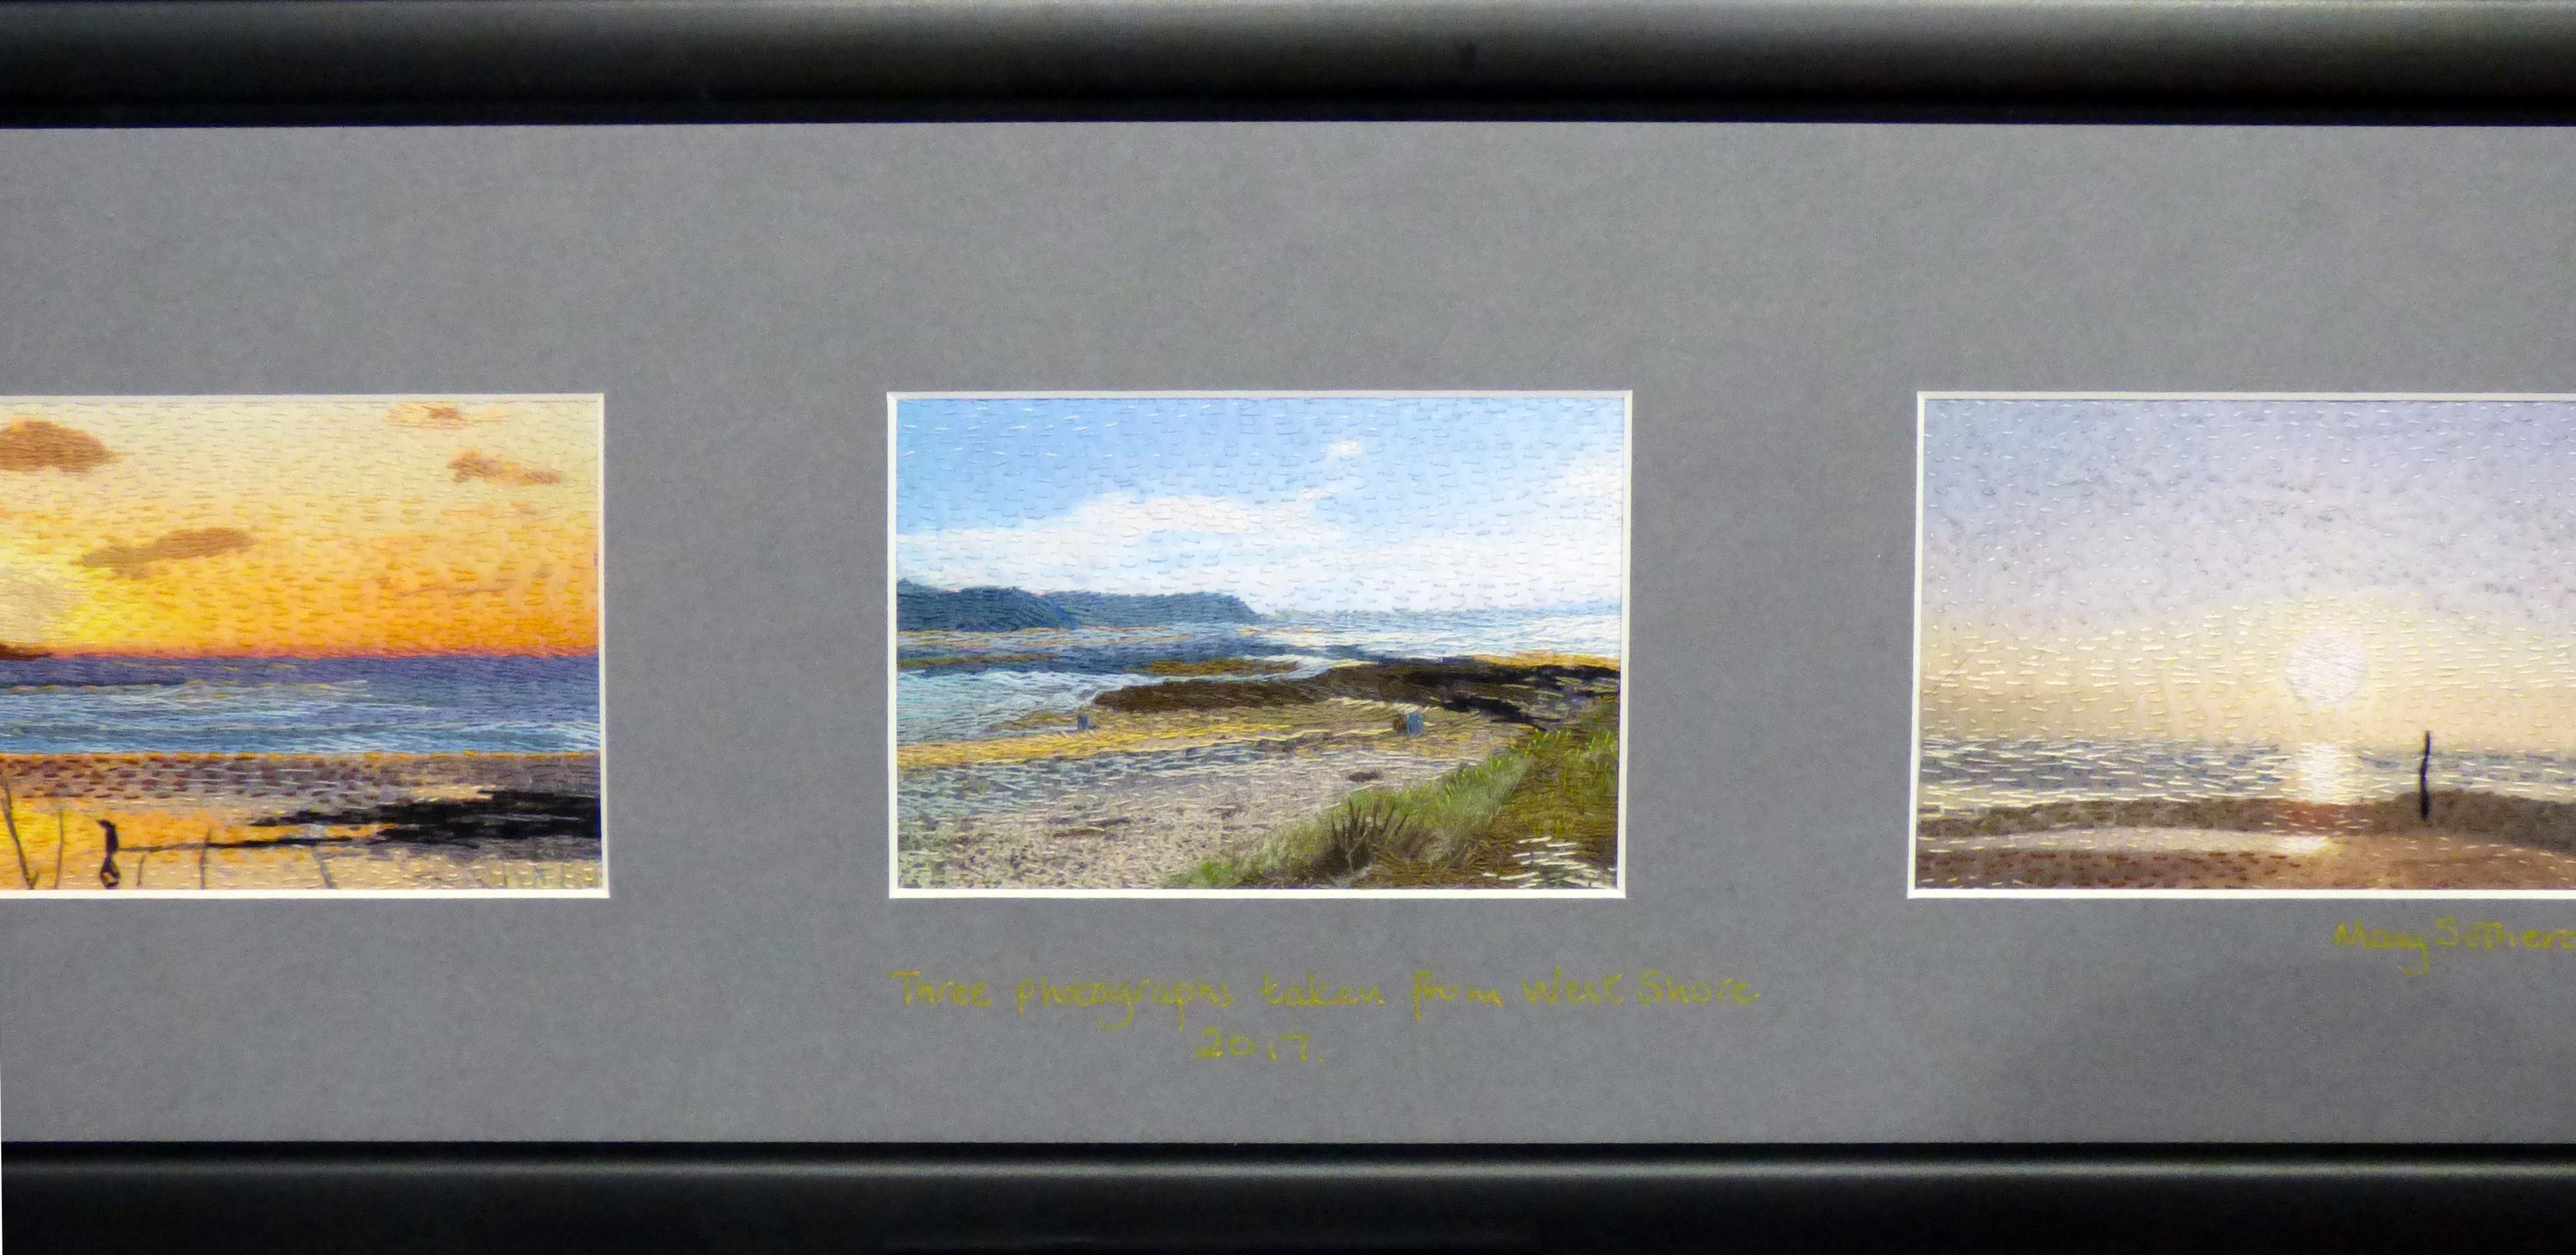 VIEWS OF WEST SHORE TRIPTYCH by Mary Sotheran, N.Wales EG, hand embroidery